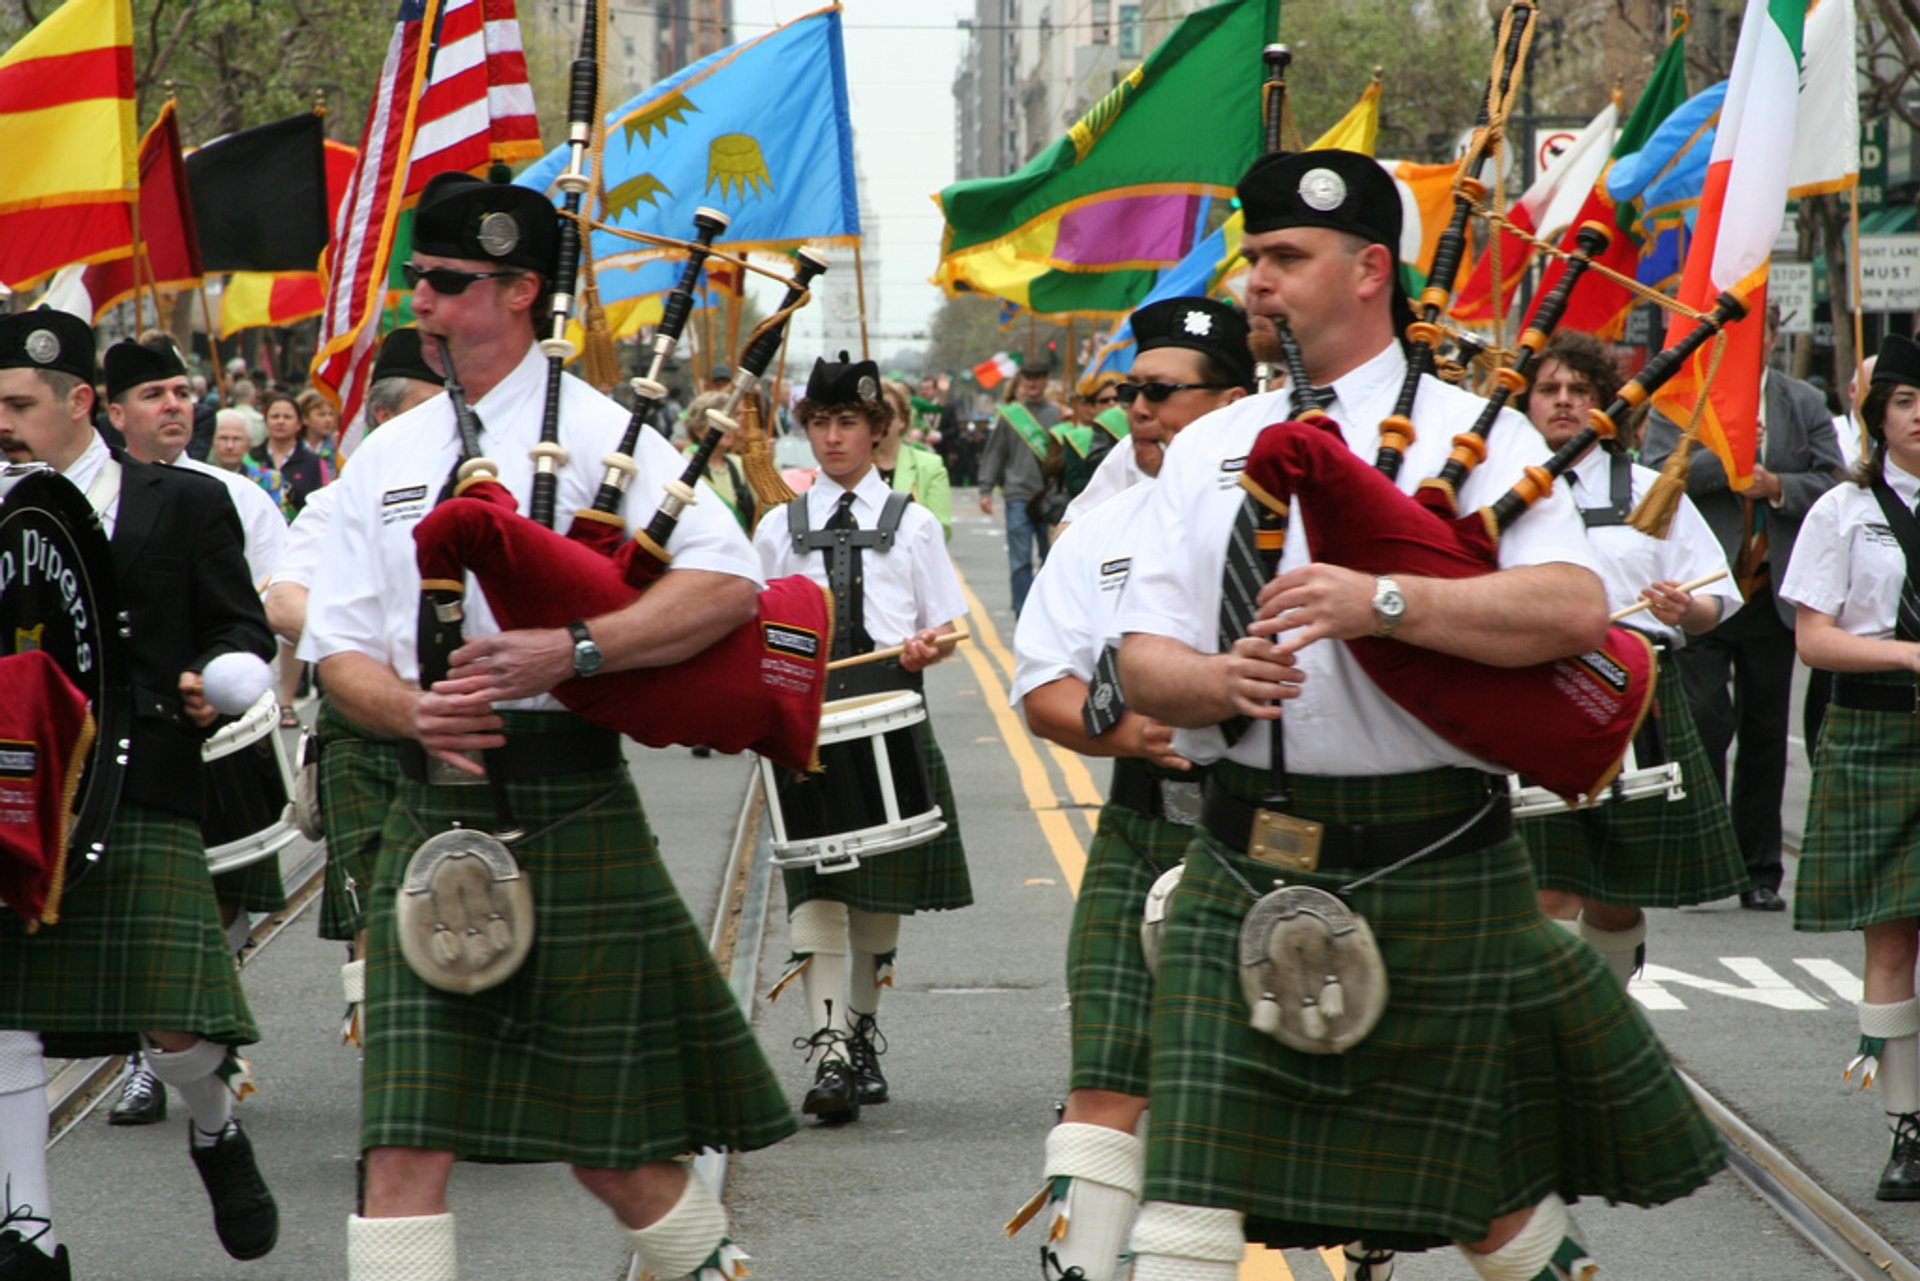 St. Patrick's Day Parade in San Francisco 2020 - Best Time